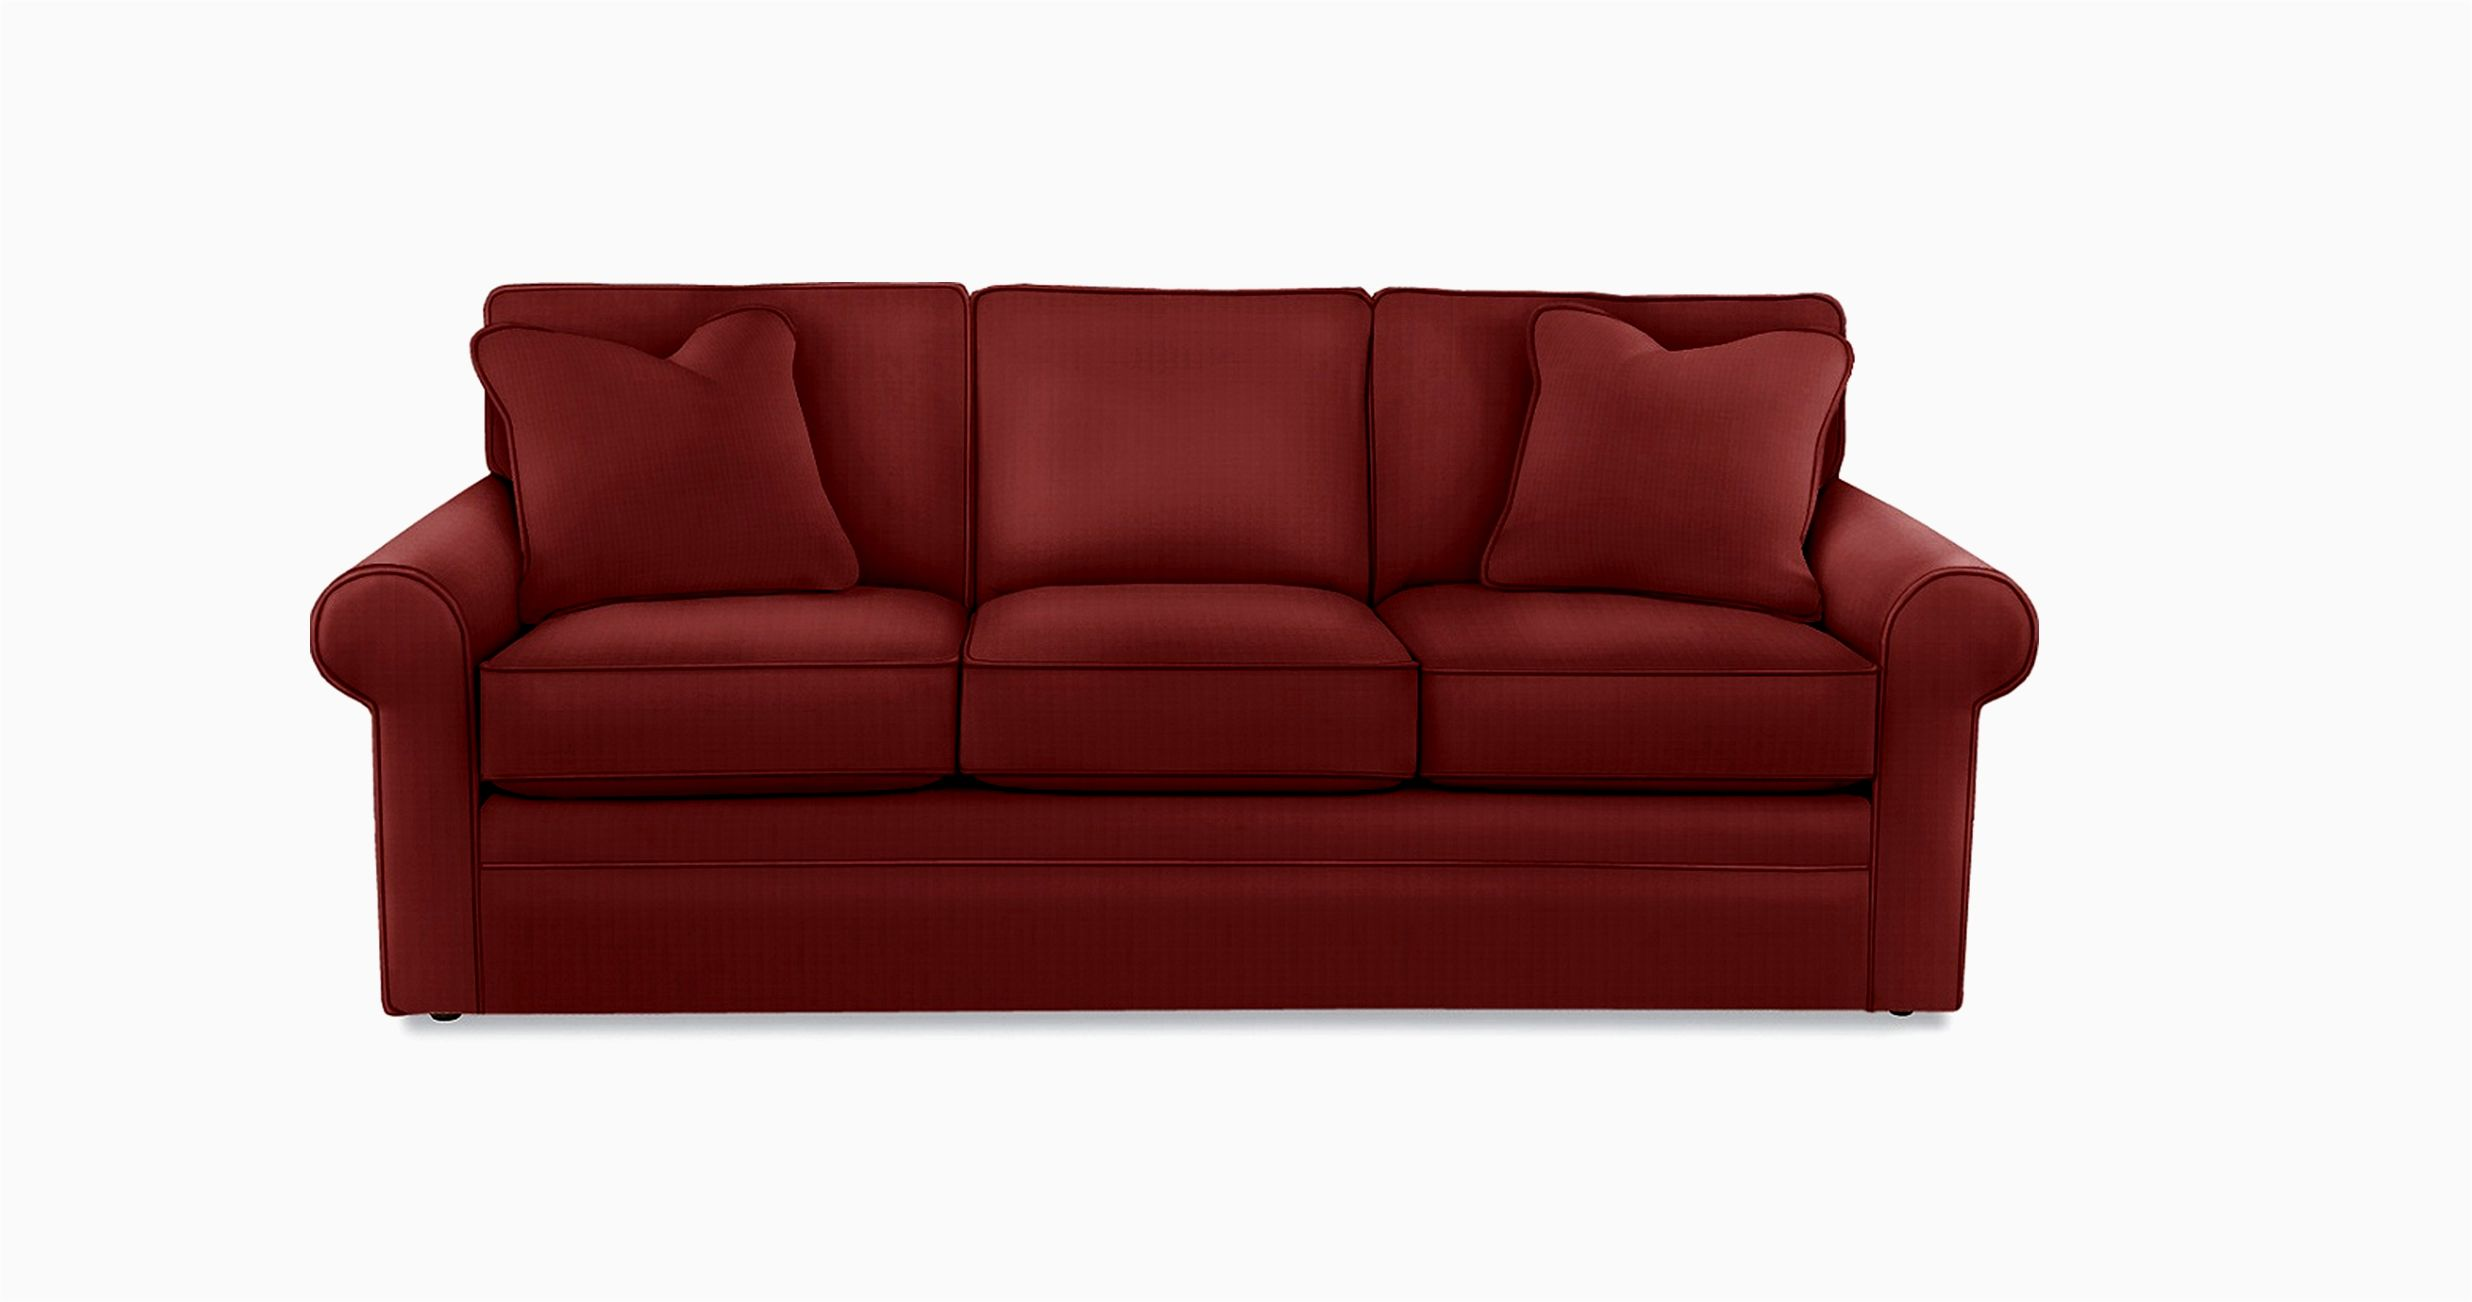 lovely used sofa for sale inspiration-Sensational Used sofa for Sale Ideas